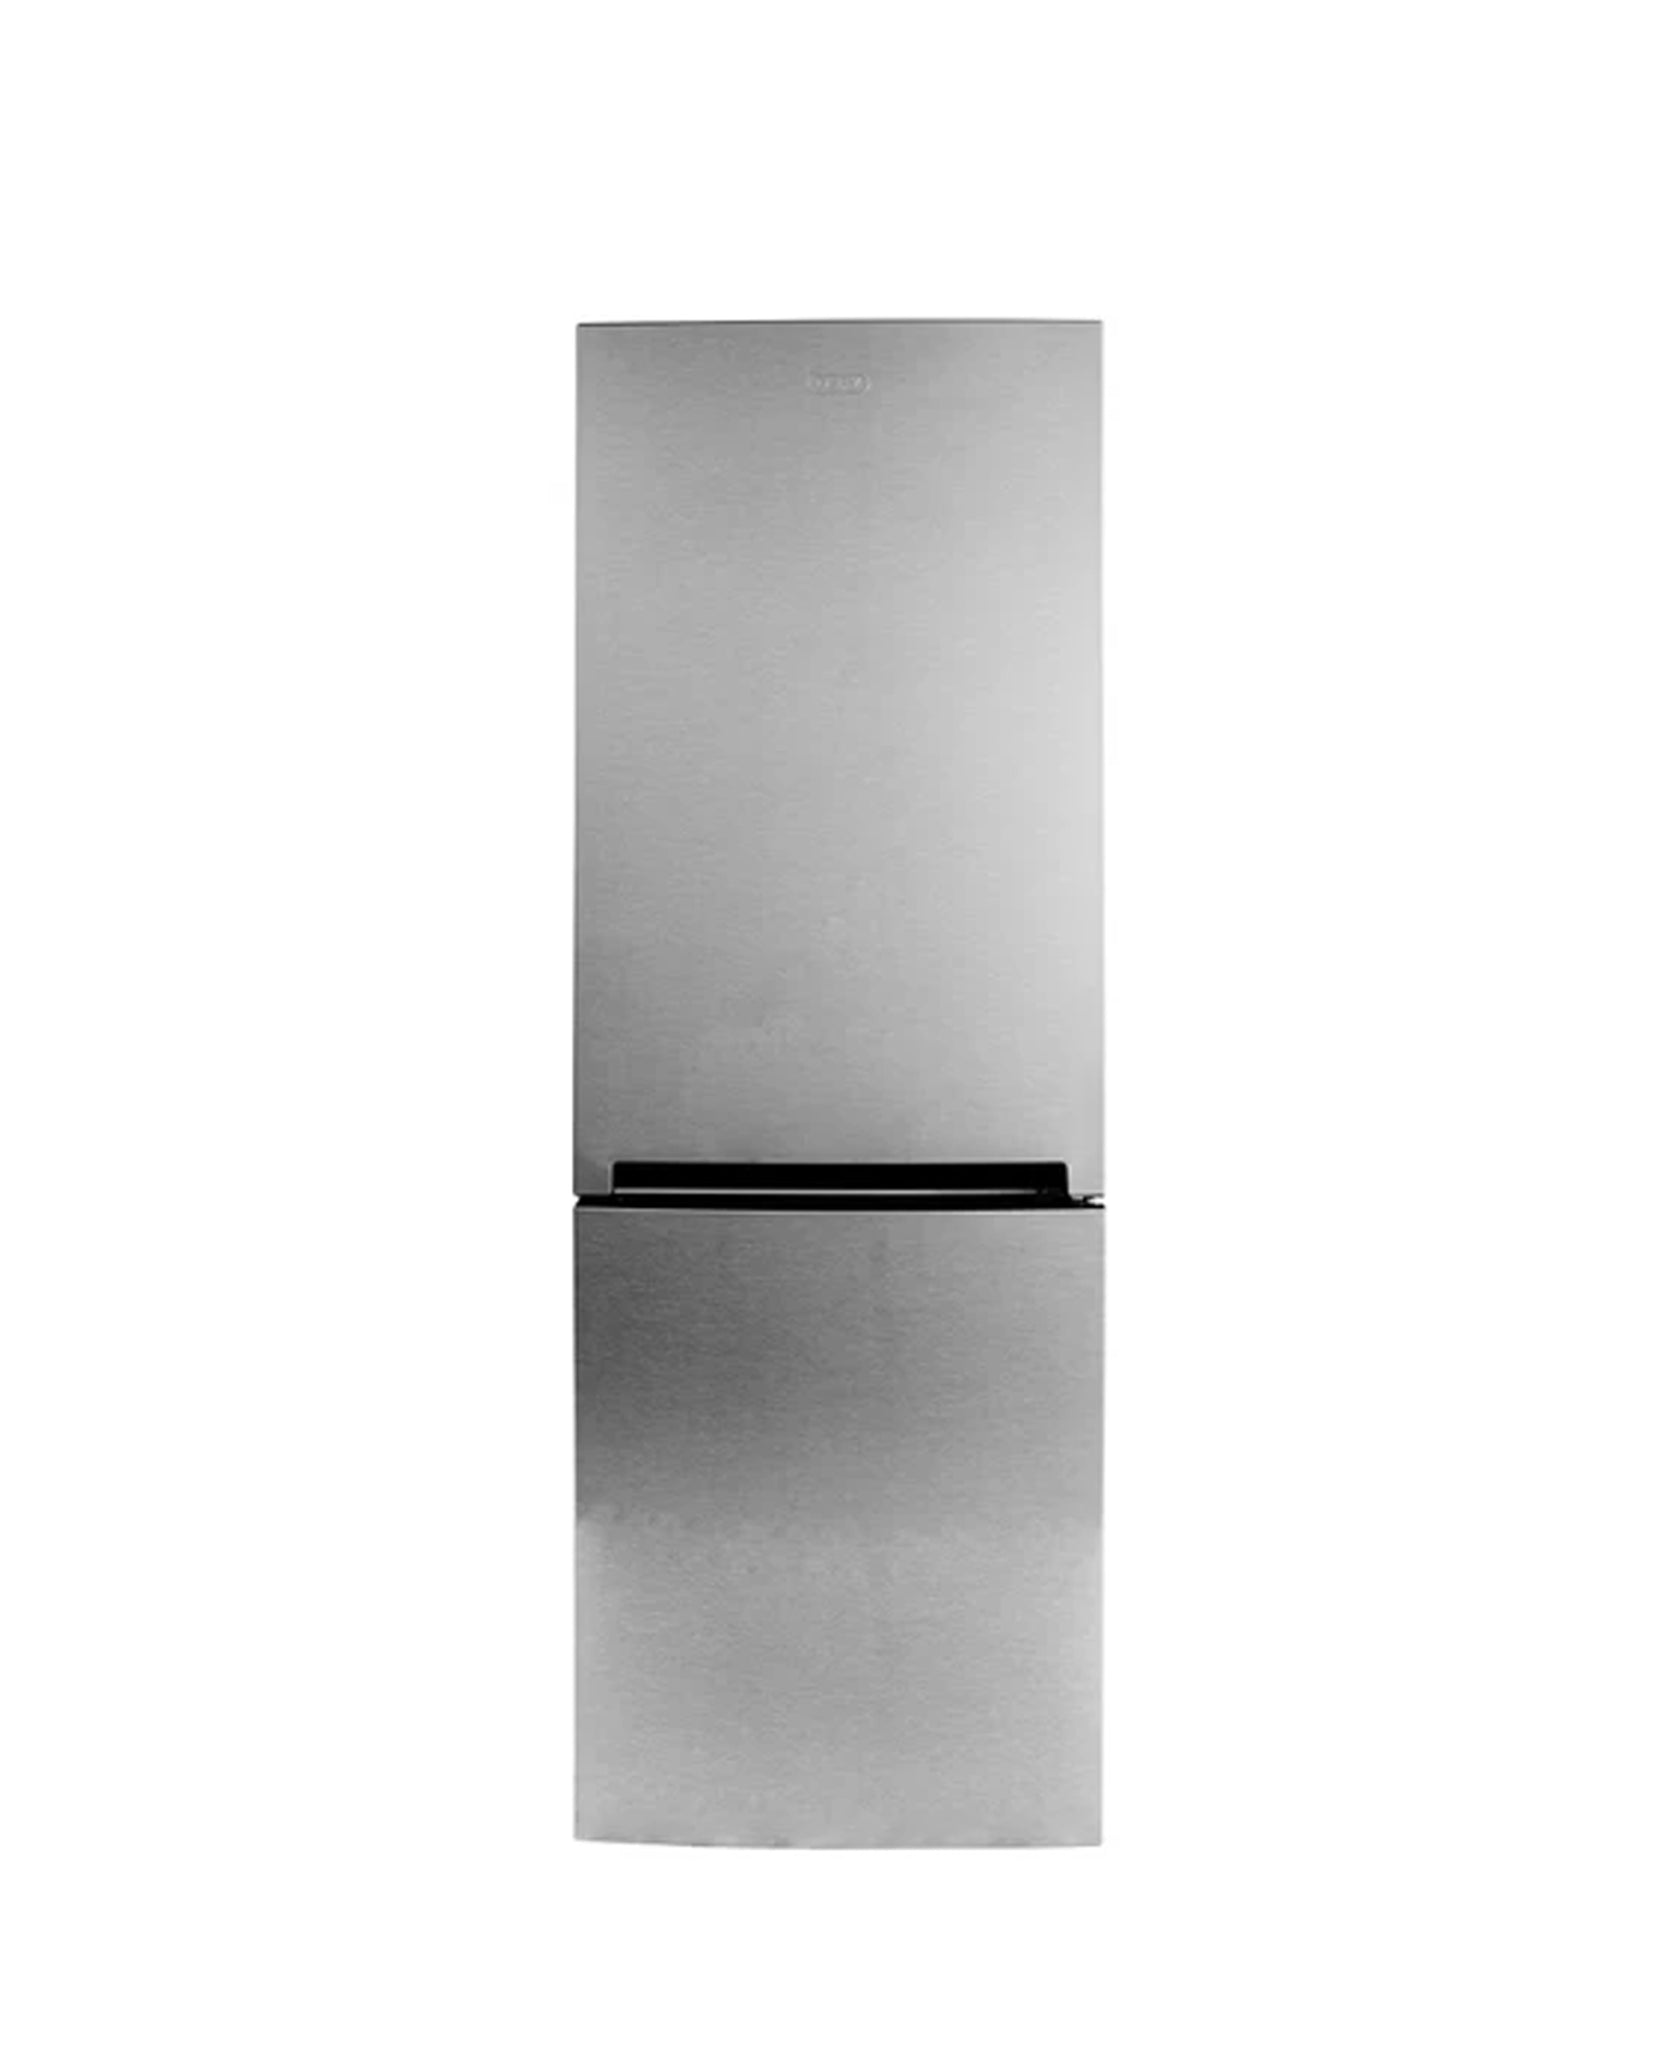 Defy 350L Eco Bottom Freezer Fridge Metal DAC622